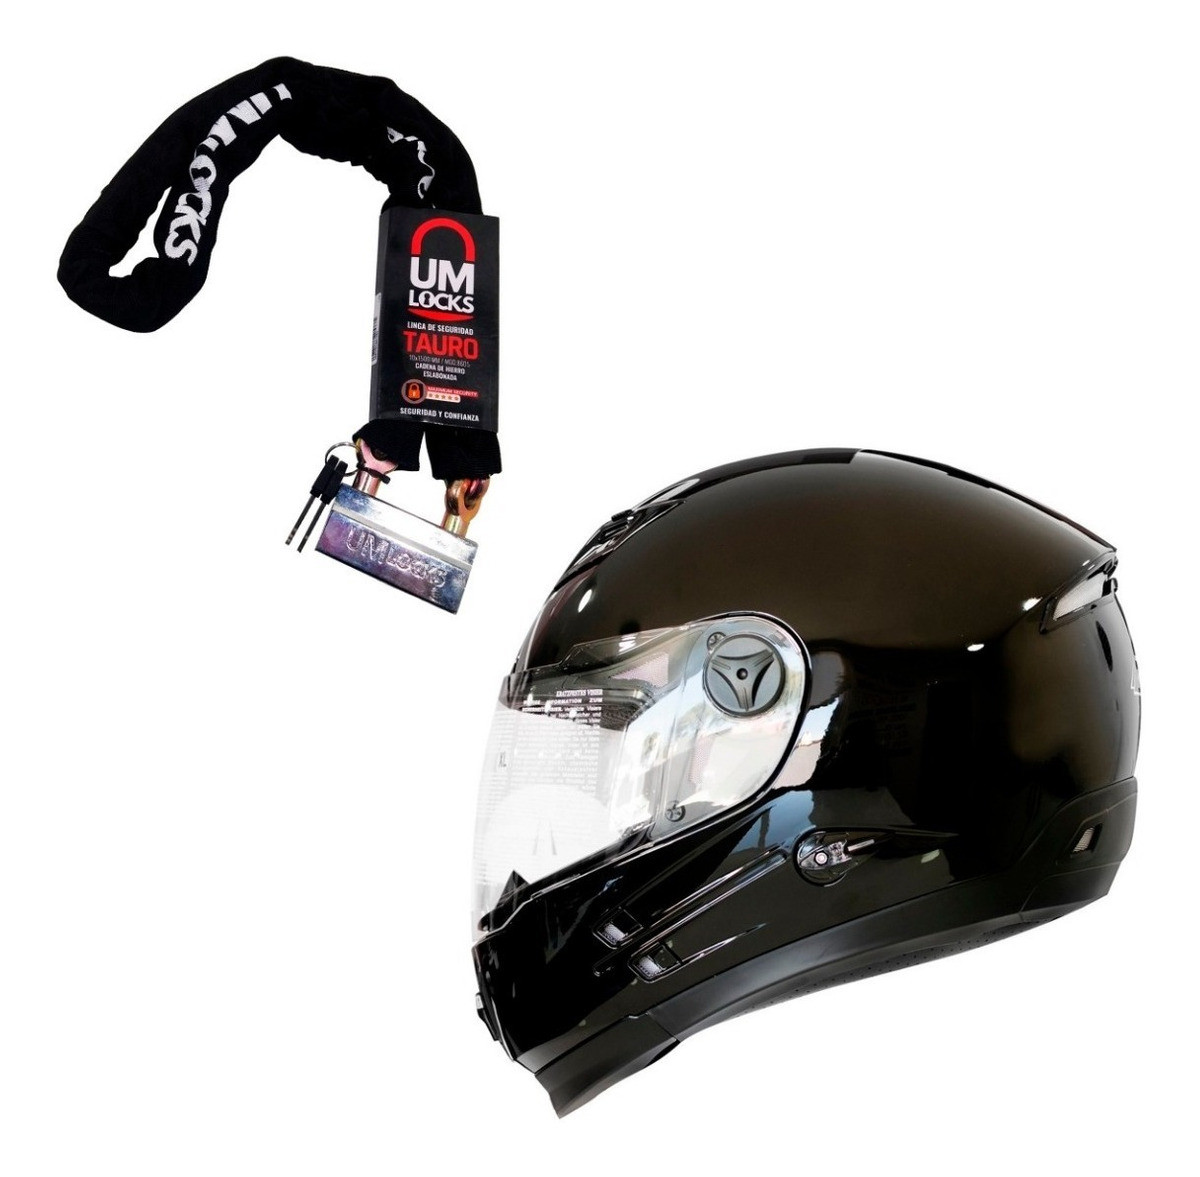 Combo Casco Integral Rod Watson + Linga Eslabonada UM Locks